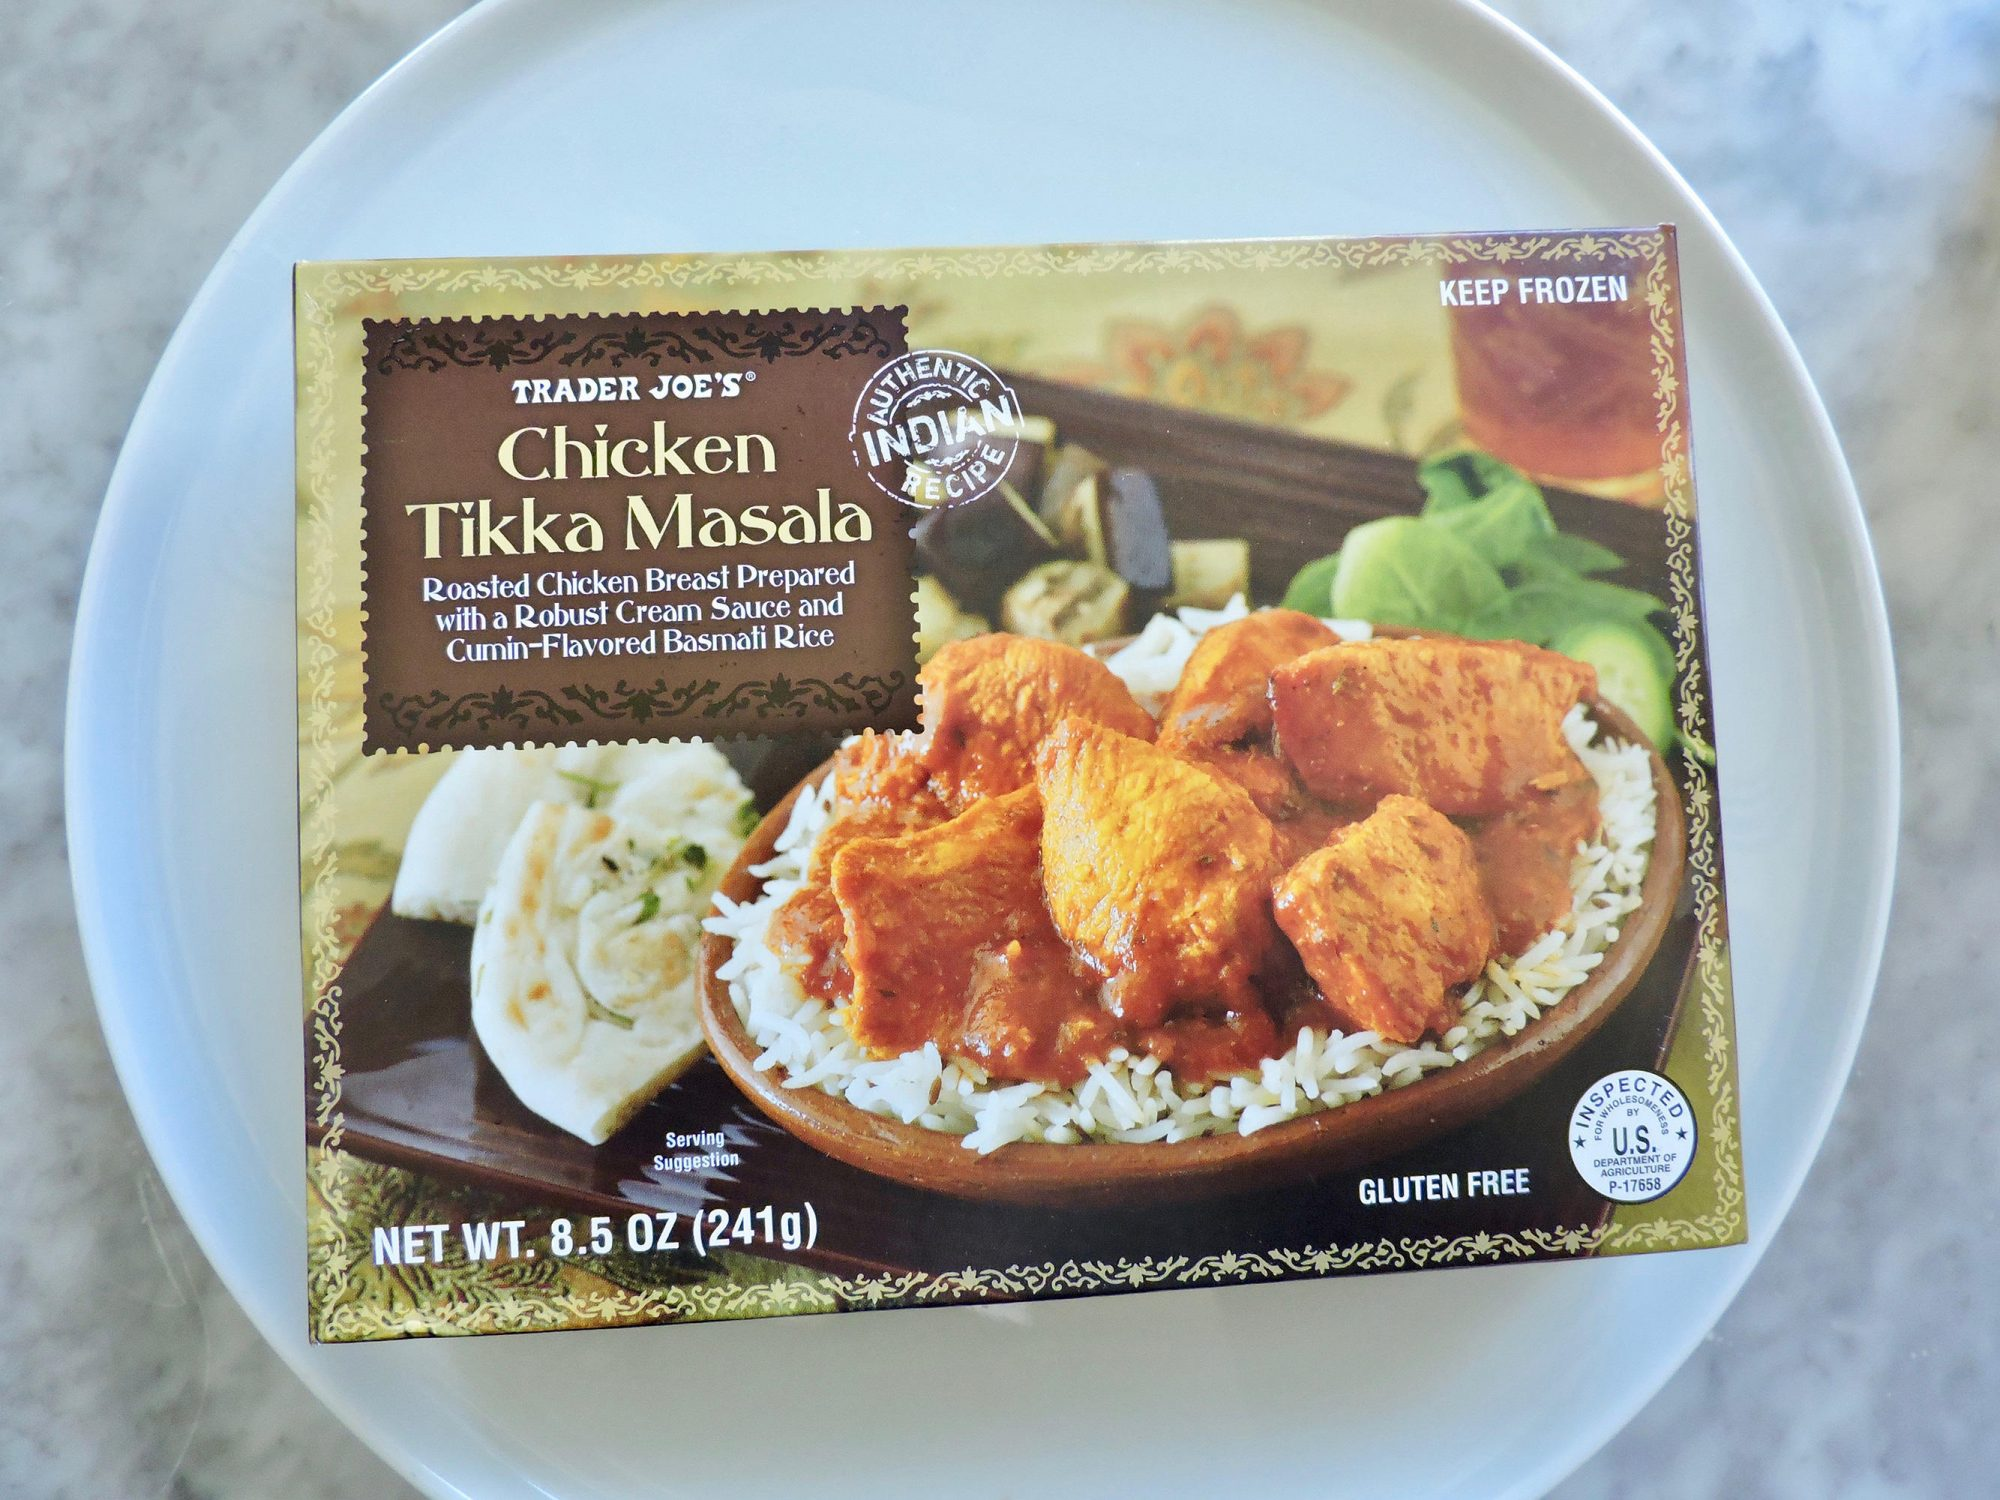 15 Nutritionist-Approved Trader Joe's Foods for $5 or Less 1804w-Chicken-Tikka-Masala